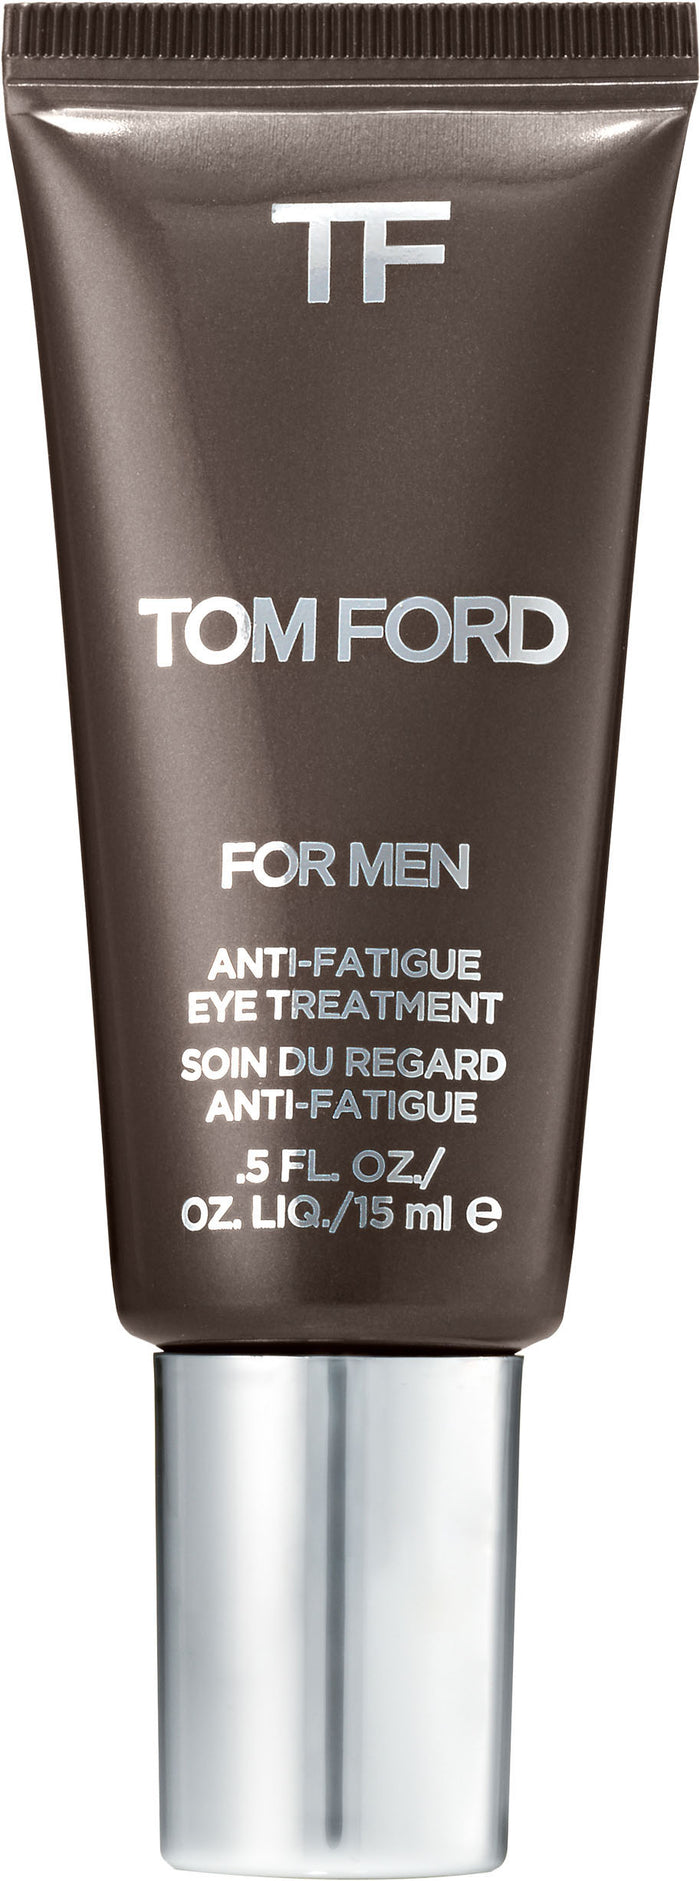 Tom Ford Anti-Fatigue Eye Treatment 15 ml - Koch Parfymeri